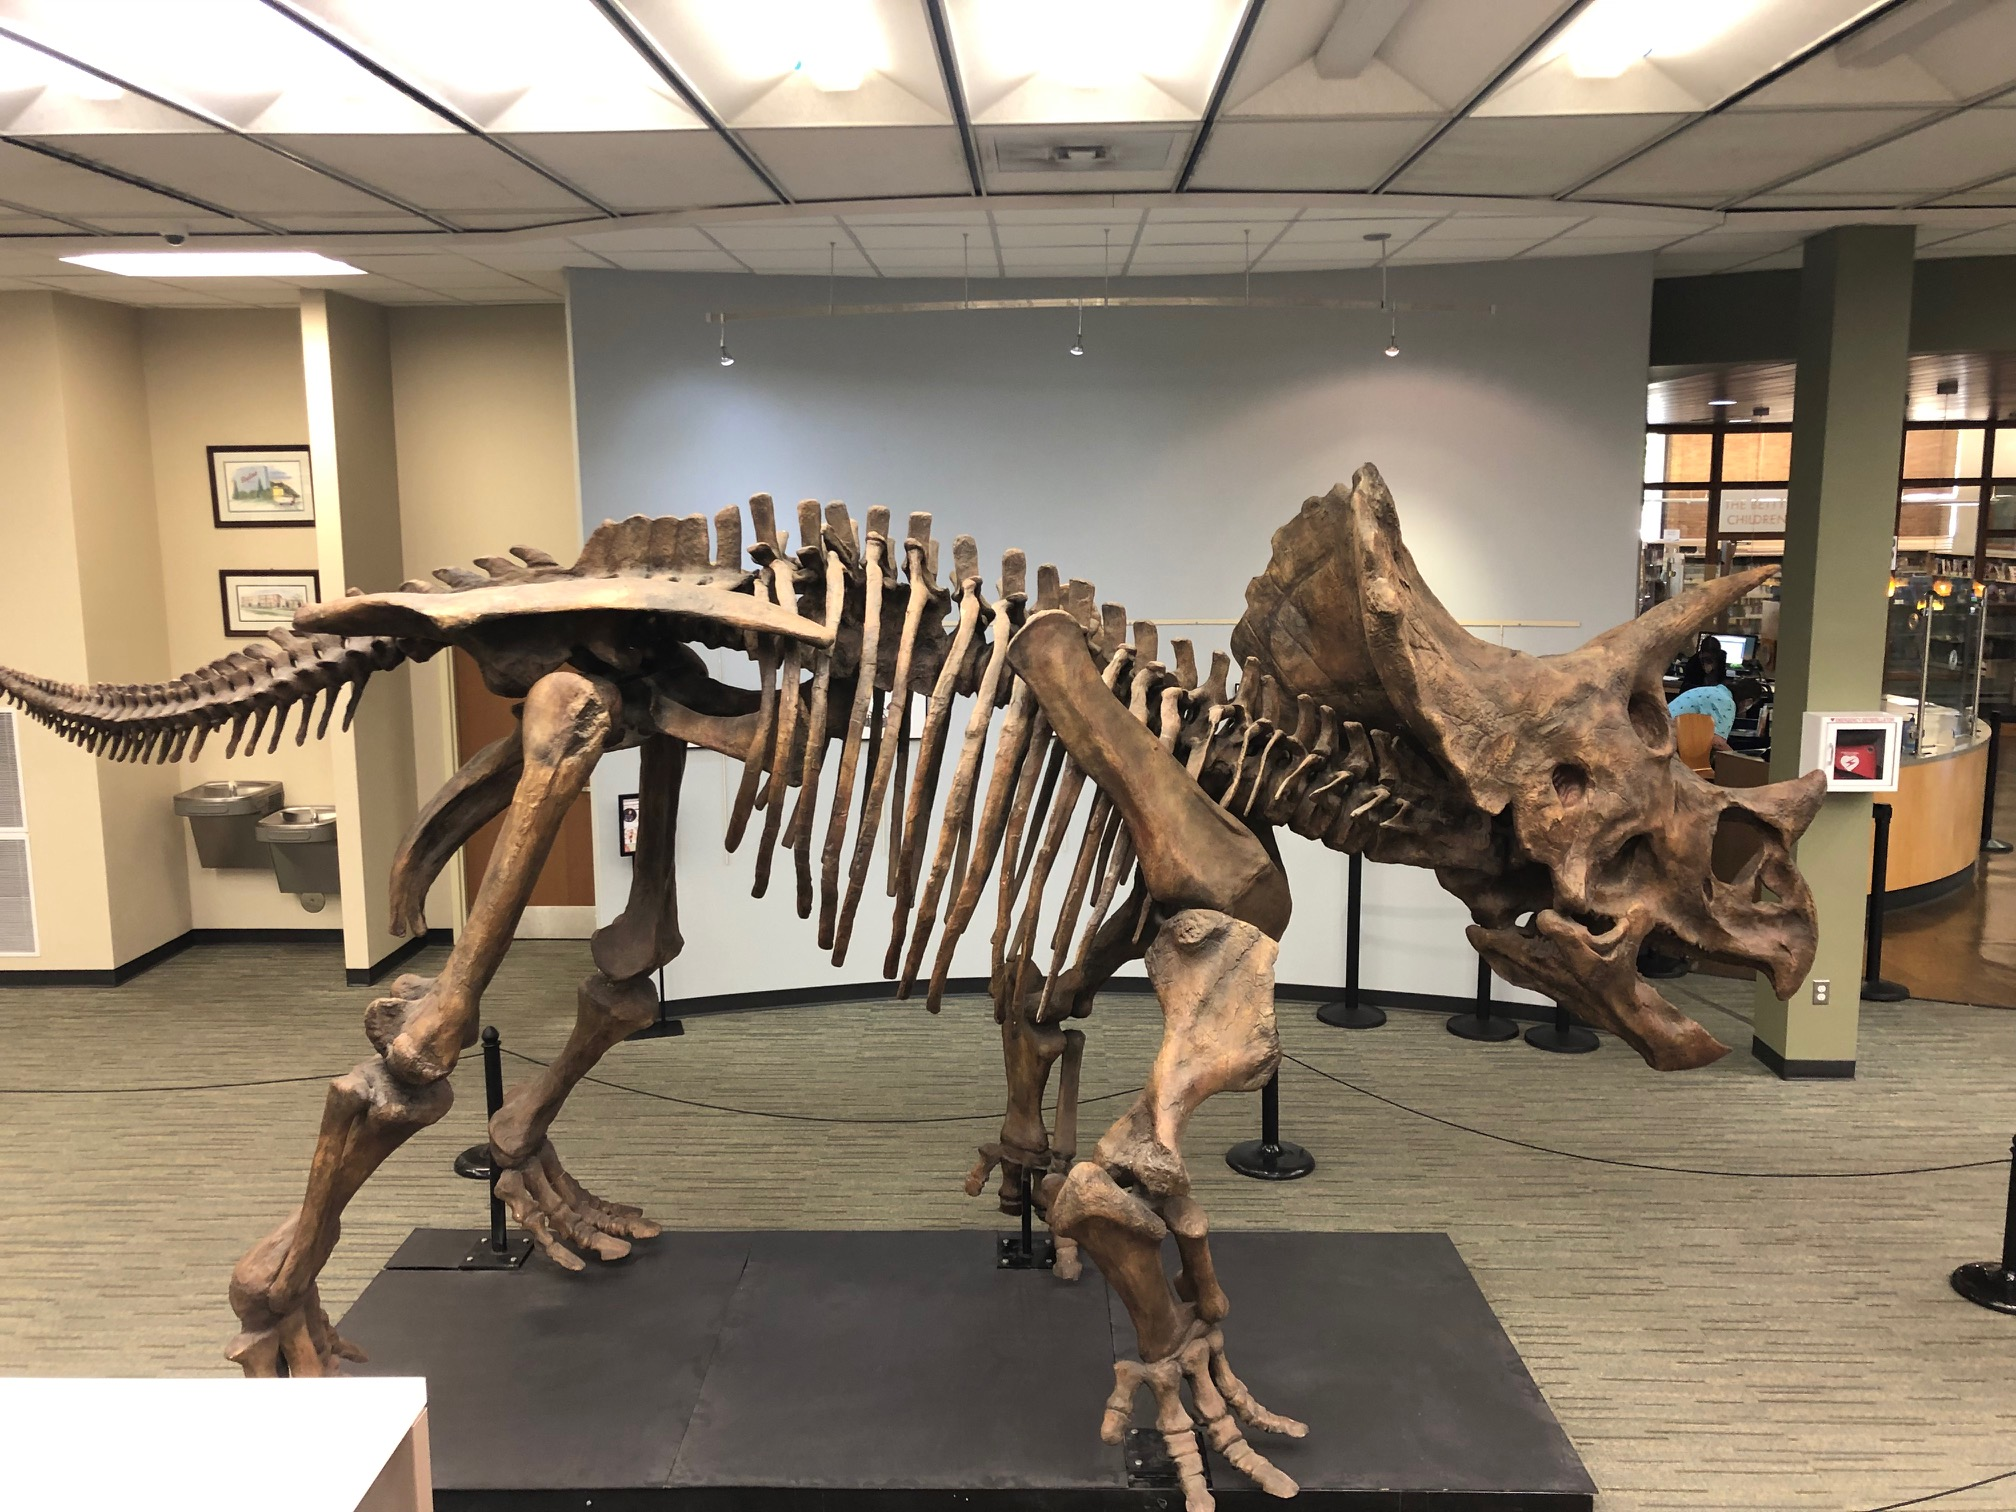 Public Library Spotlight: There's a Dinosaur in the Library